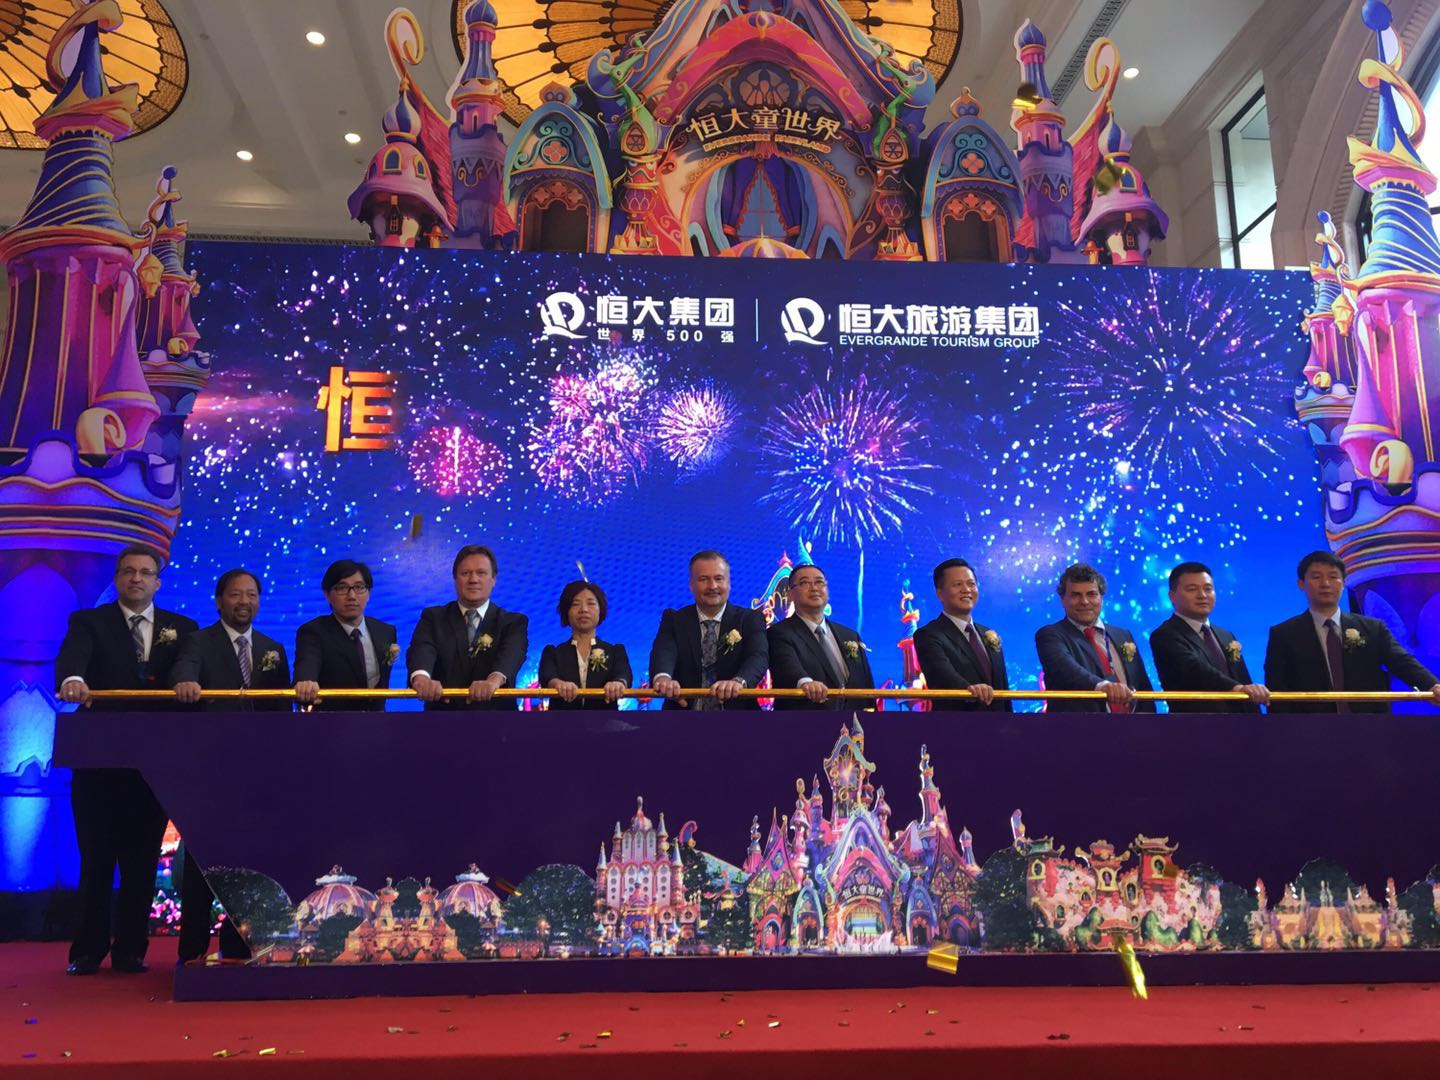 IdeAttack will serve as the exclusive designer, planner, attraction producer and general contractor for the Evergrande Group